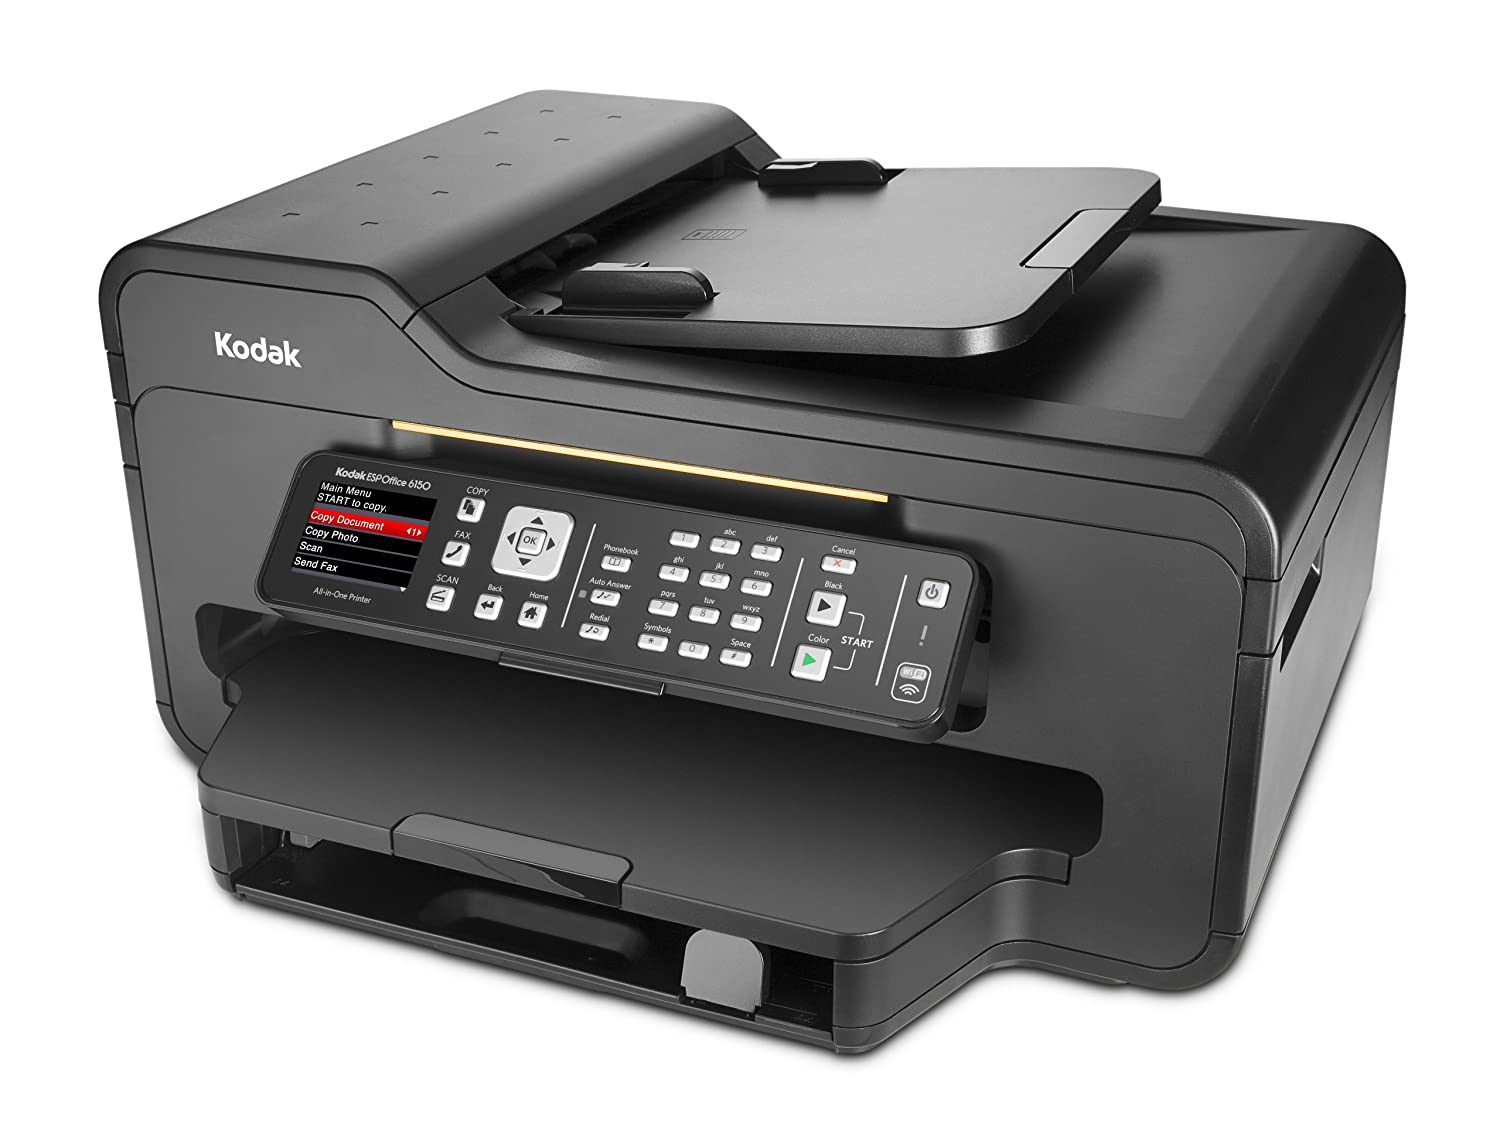 KODAK AIO PRINTER DRIVER FOR WINDOWS